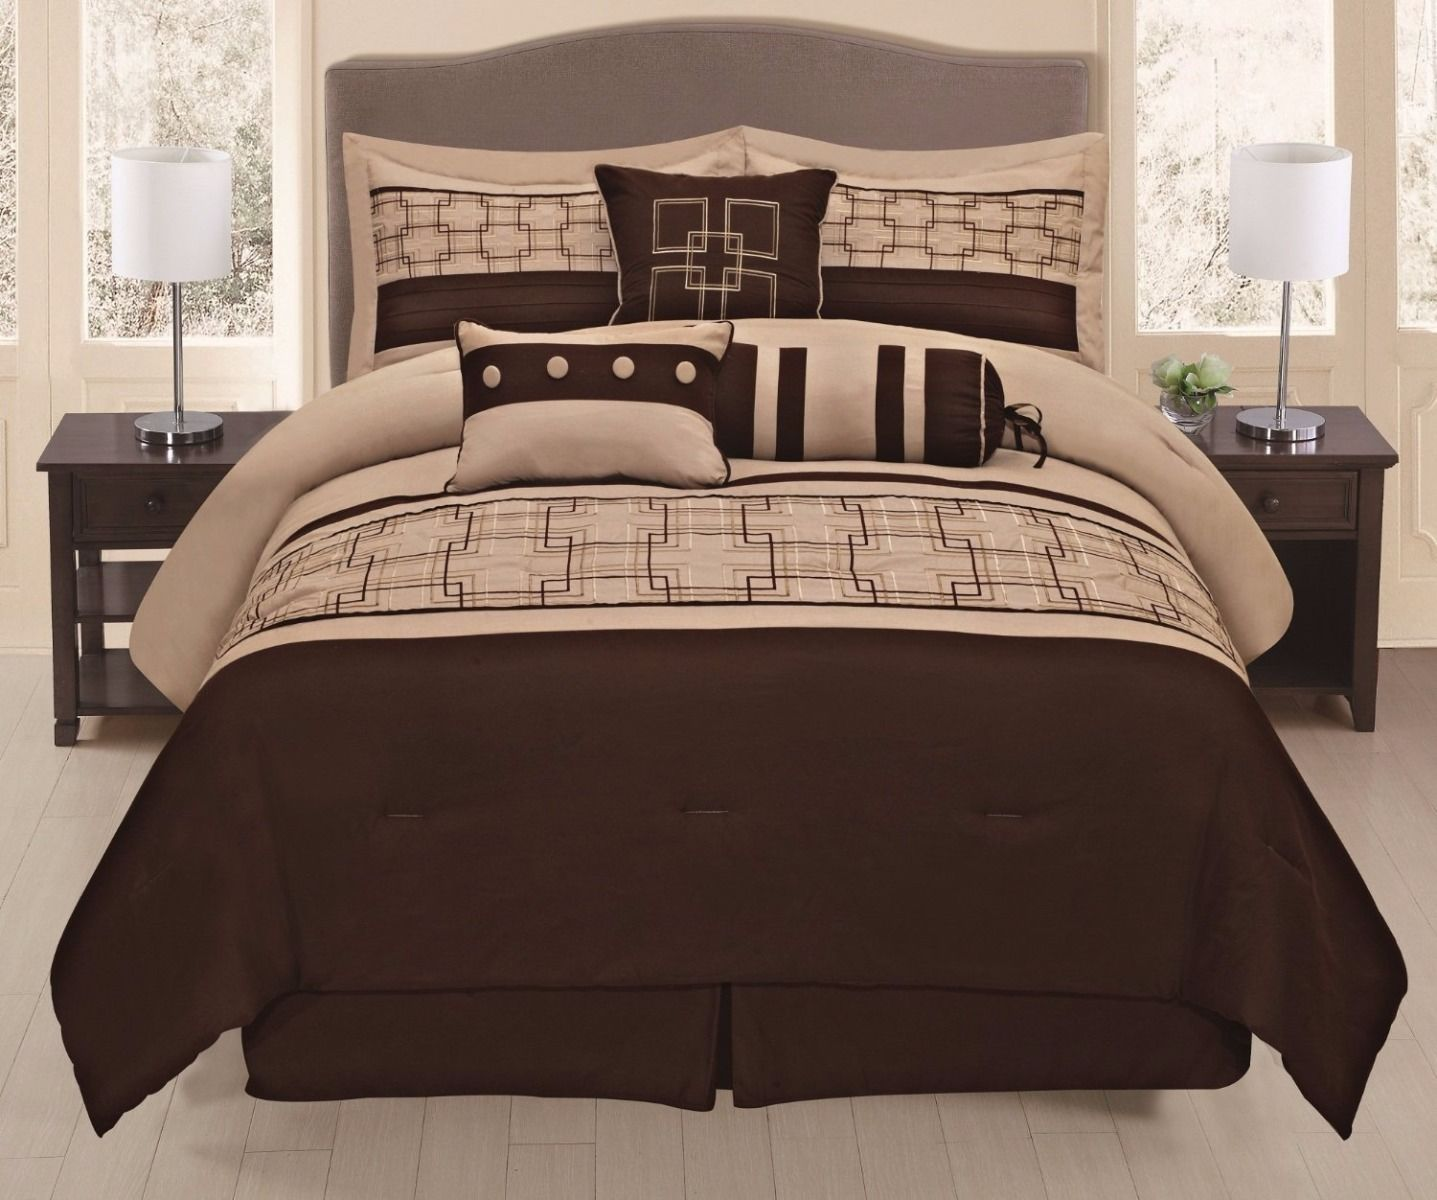 Bedroom: Queen Size Bed Sets Cheap | Queen Size Bedding Sets ...